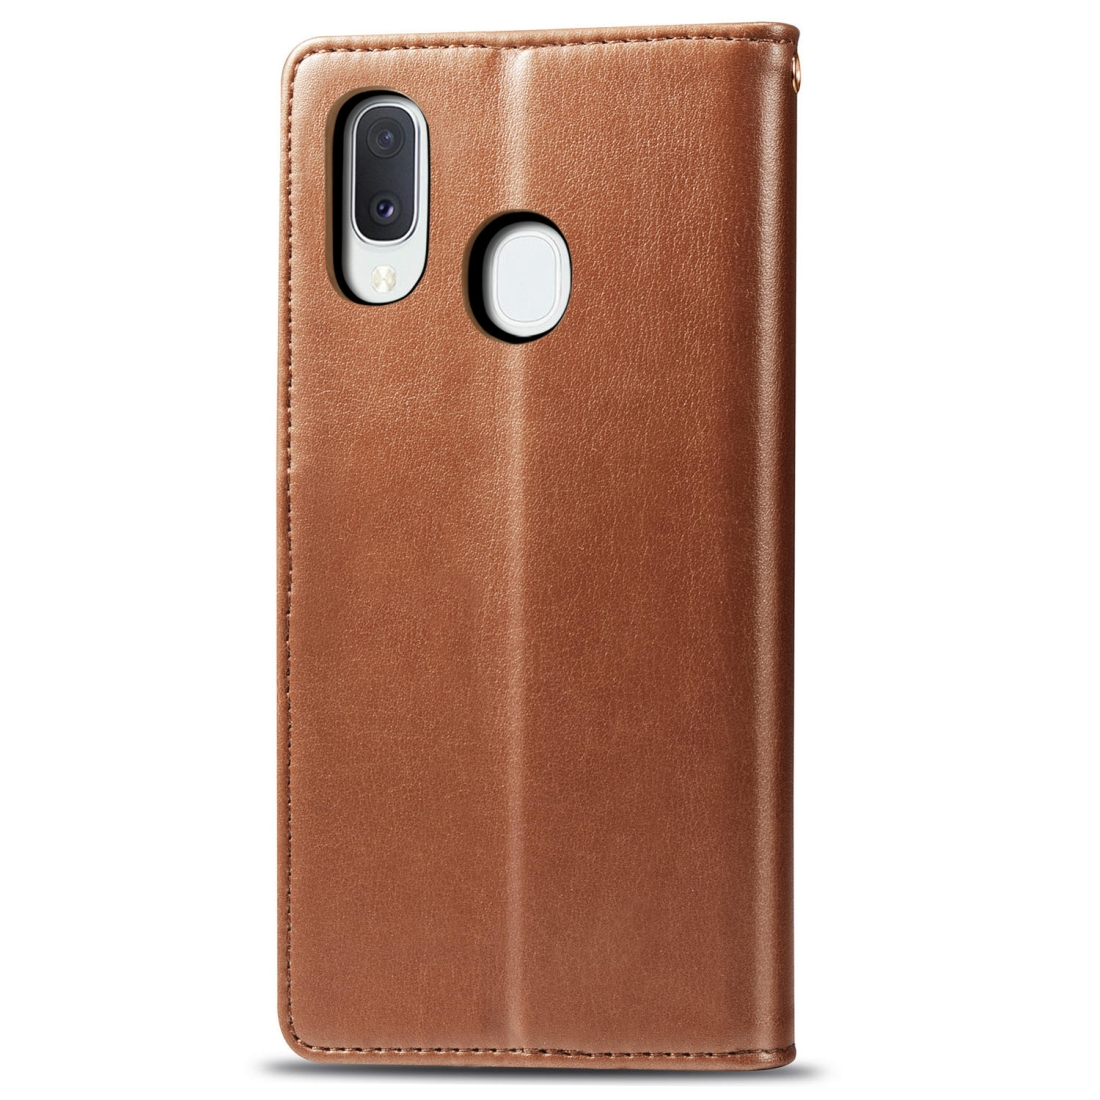 Retro Solid Color Leather Buckle Mobile Phone Protection Leather Case with Lanyard & Photo Frame & Card Slot & Wallet & Bracket Function for Galaxy A20e (Brown)